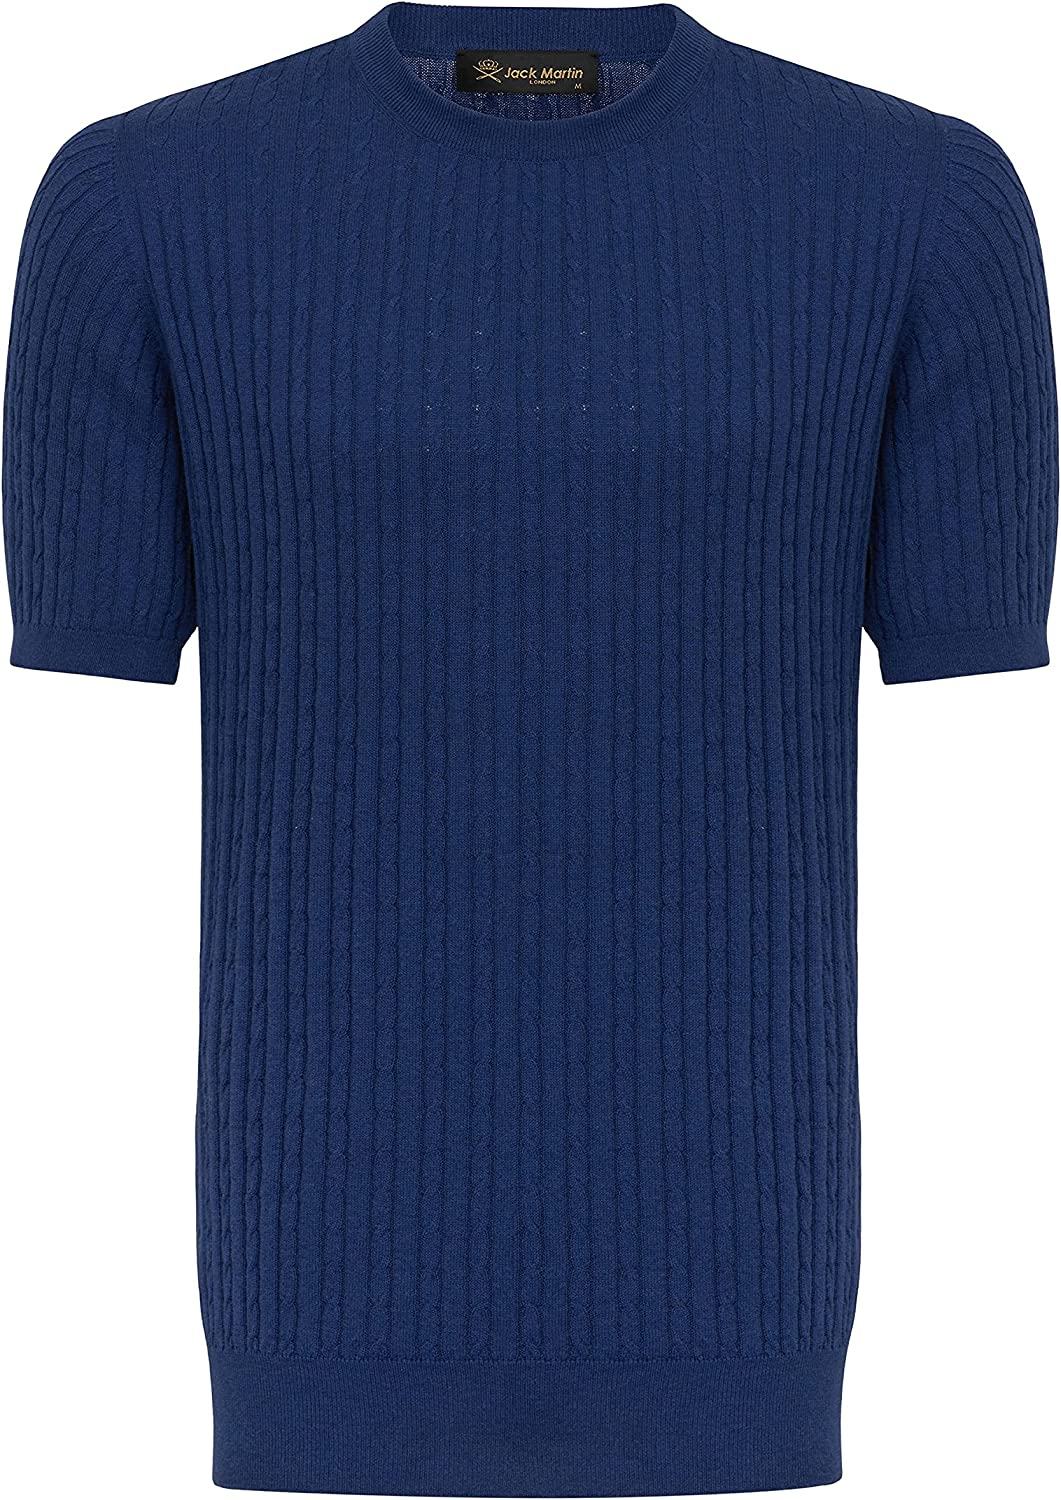 Mens Vintage Shirts – Casual, Dress, T-shirts, Polos Jack Martin - Pure Cotton Knitted T Shirt in Braided Pattern - Mens Knit Shirts  AT vintagedancer.com